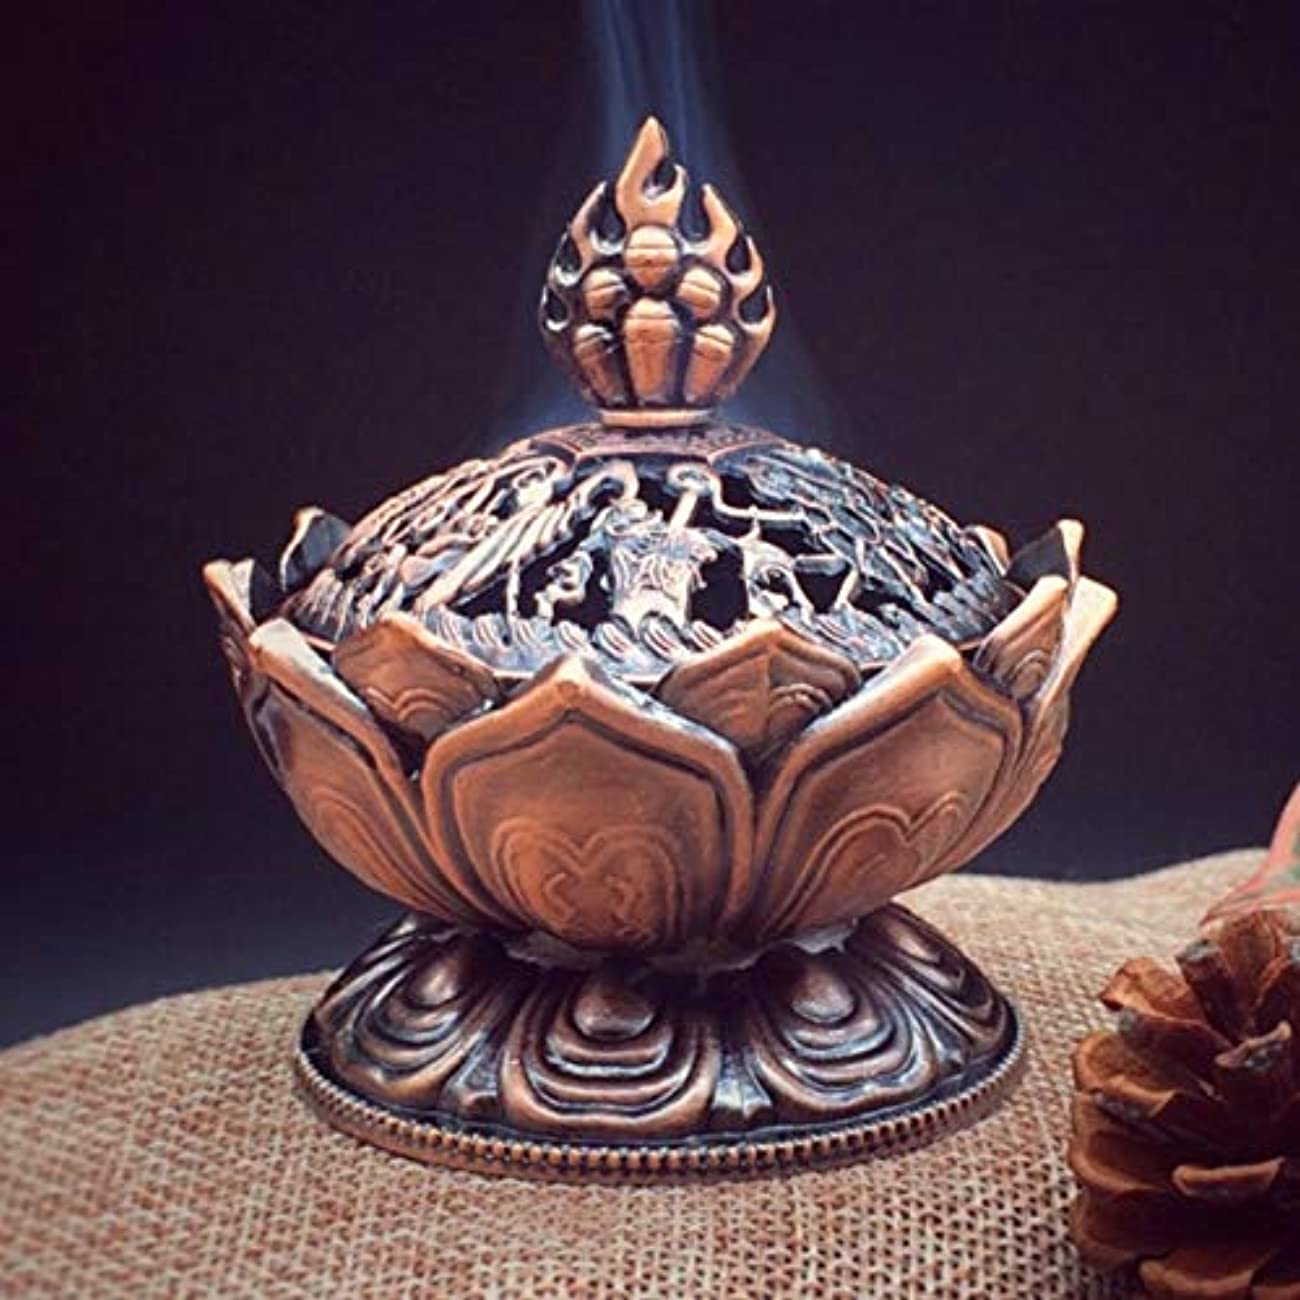 フィットネス改善切り離すHoly Tibetan Lotus Designed Incense Burner Zinc Alloy Bronze Mini Incense Burner Incensory Metal Craft Home Decor